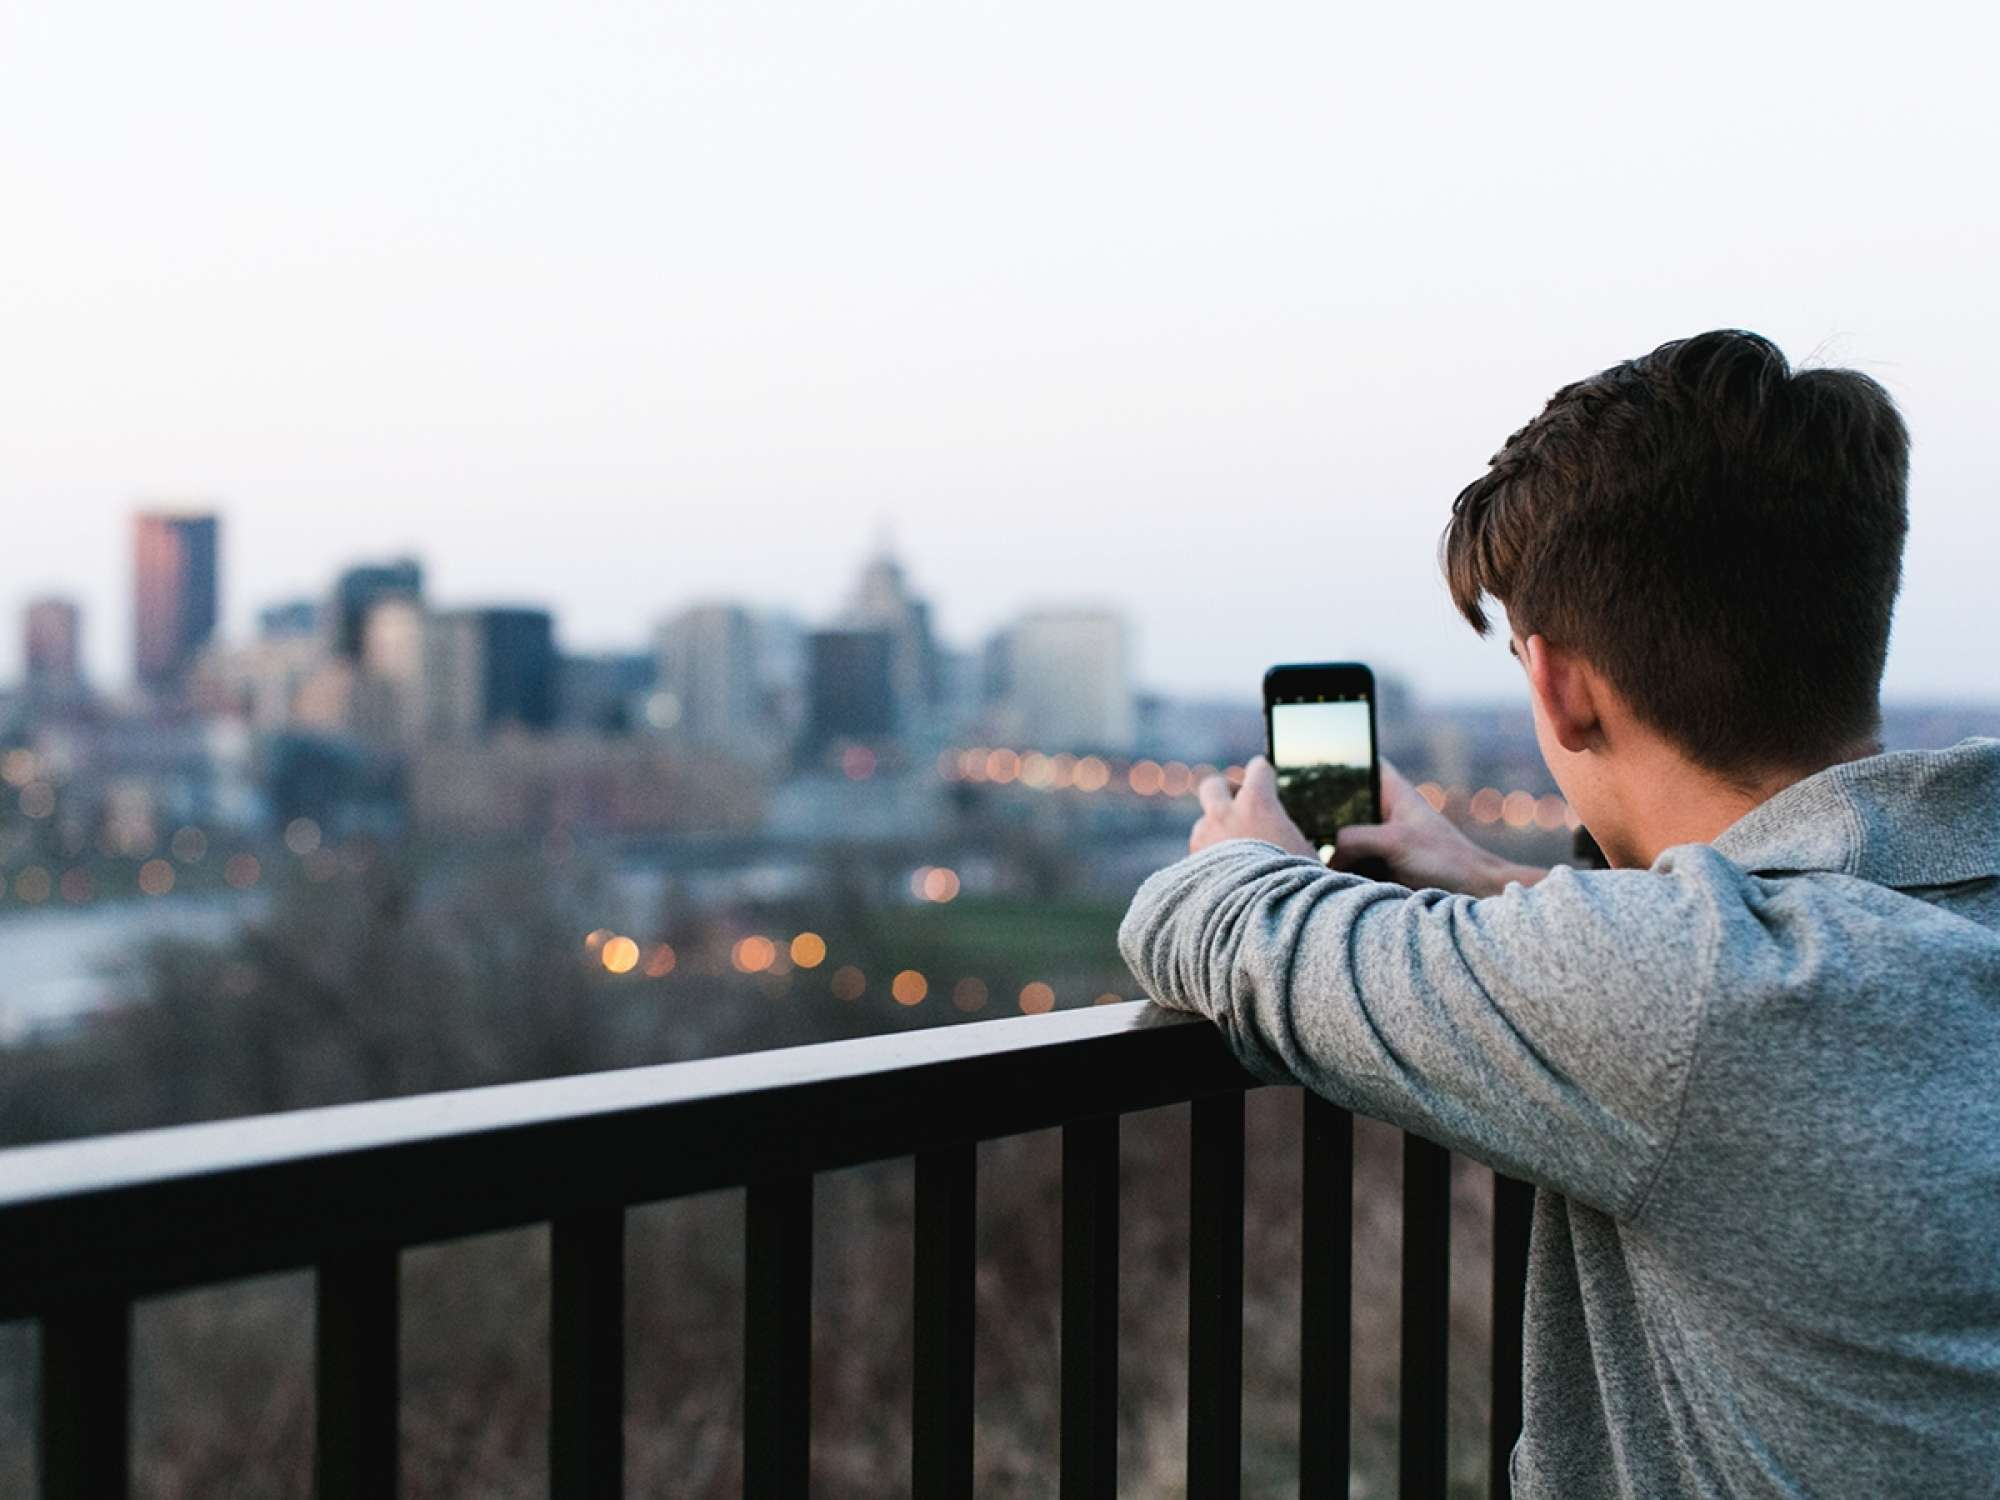 Man taking image of city